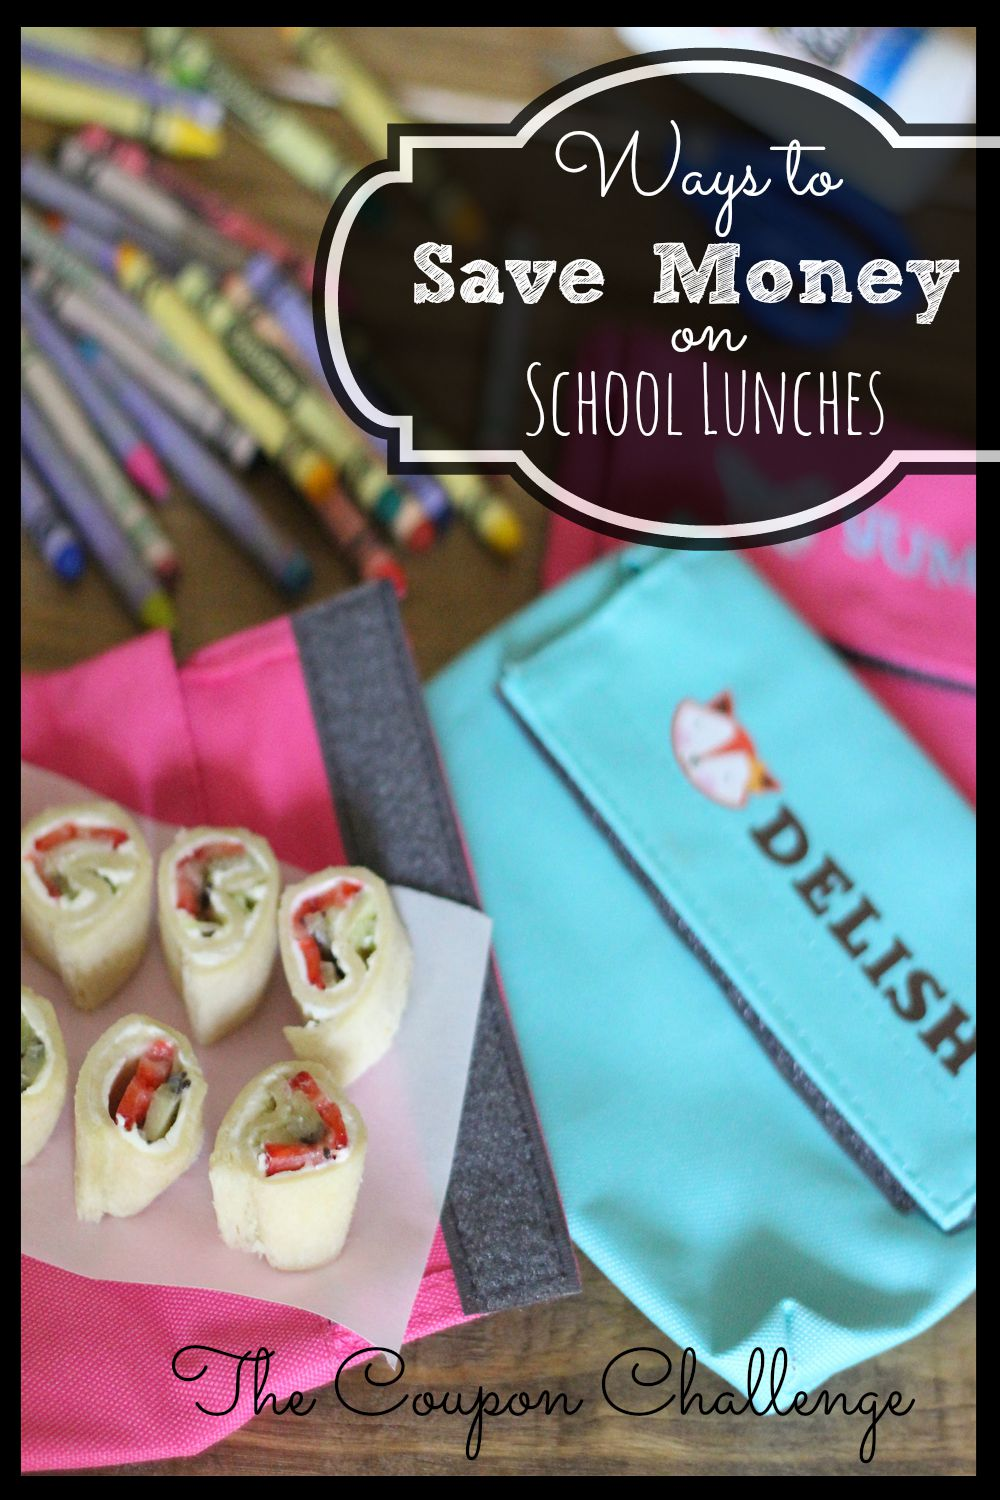 Ways-to-Save-Money-on-School-Lunches